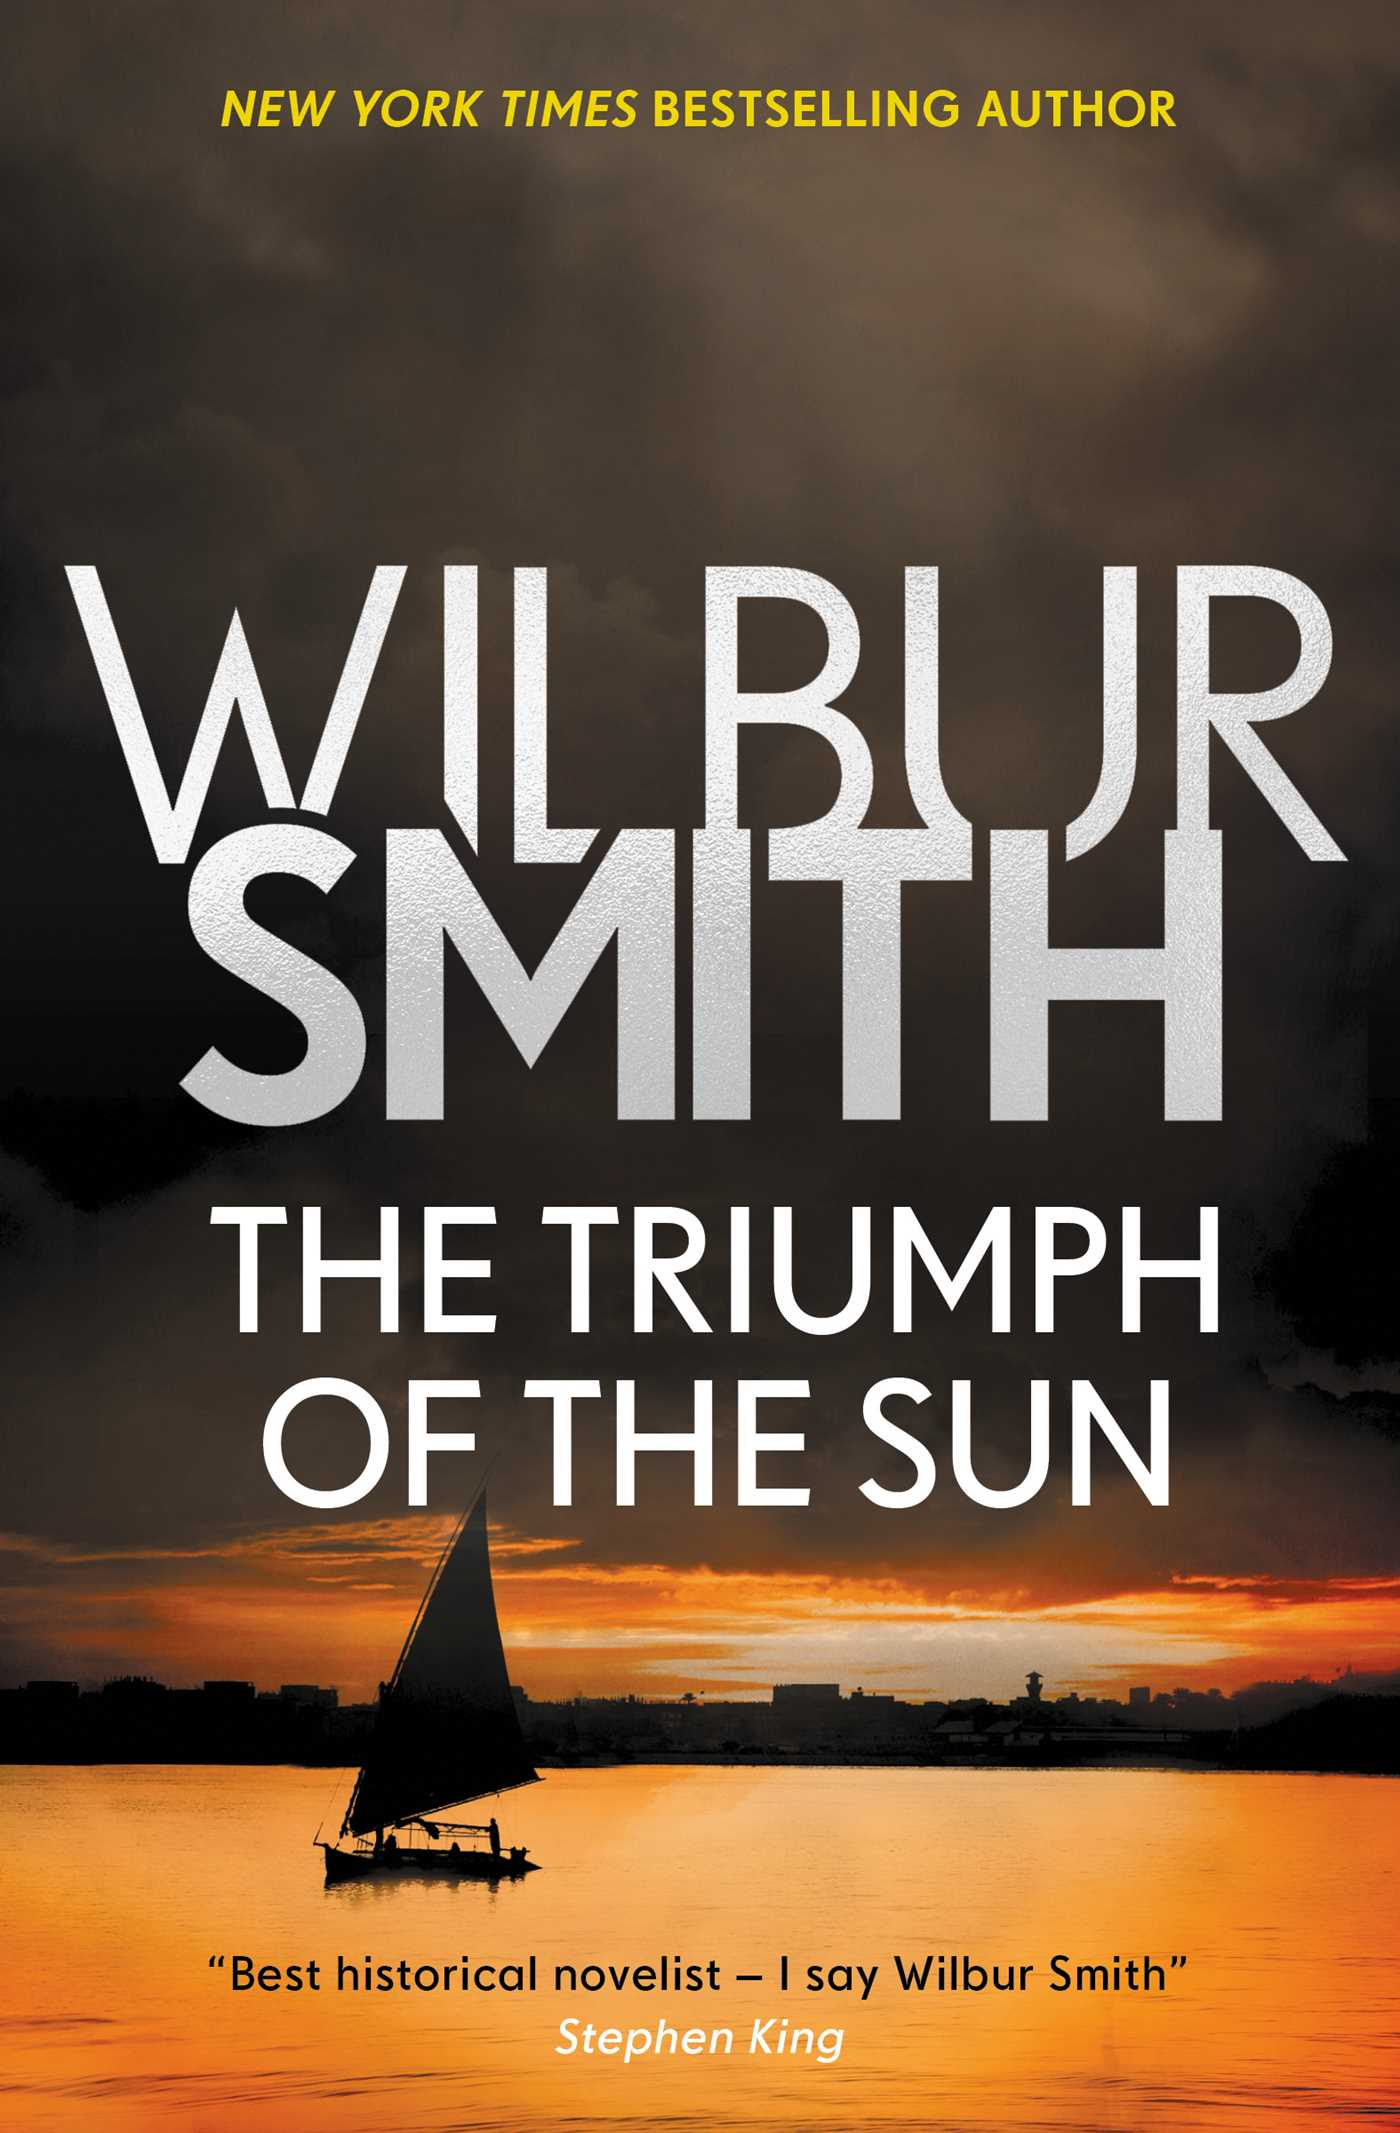 The triumph of the sun 9781499861075 hr